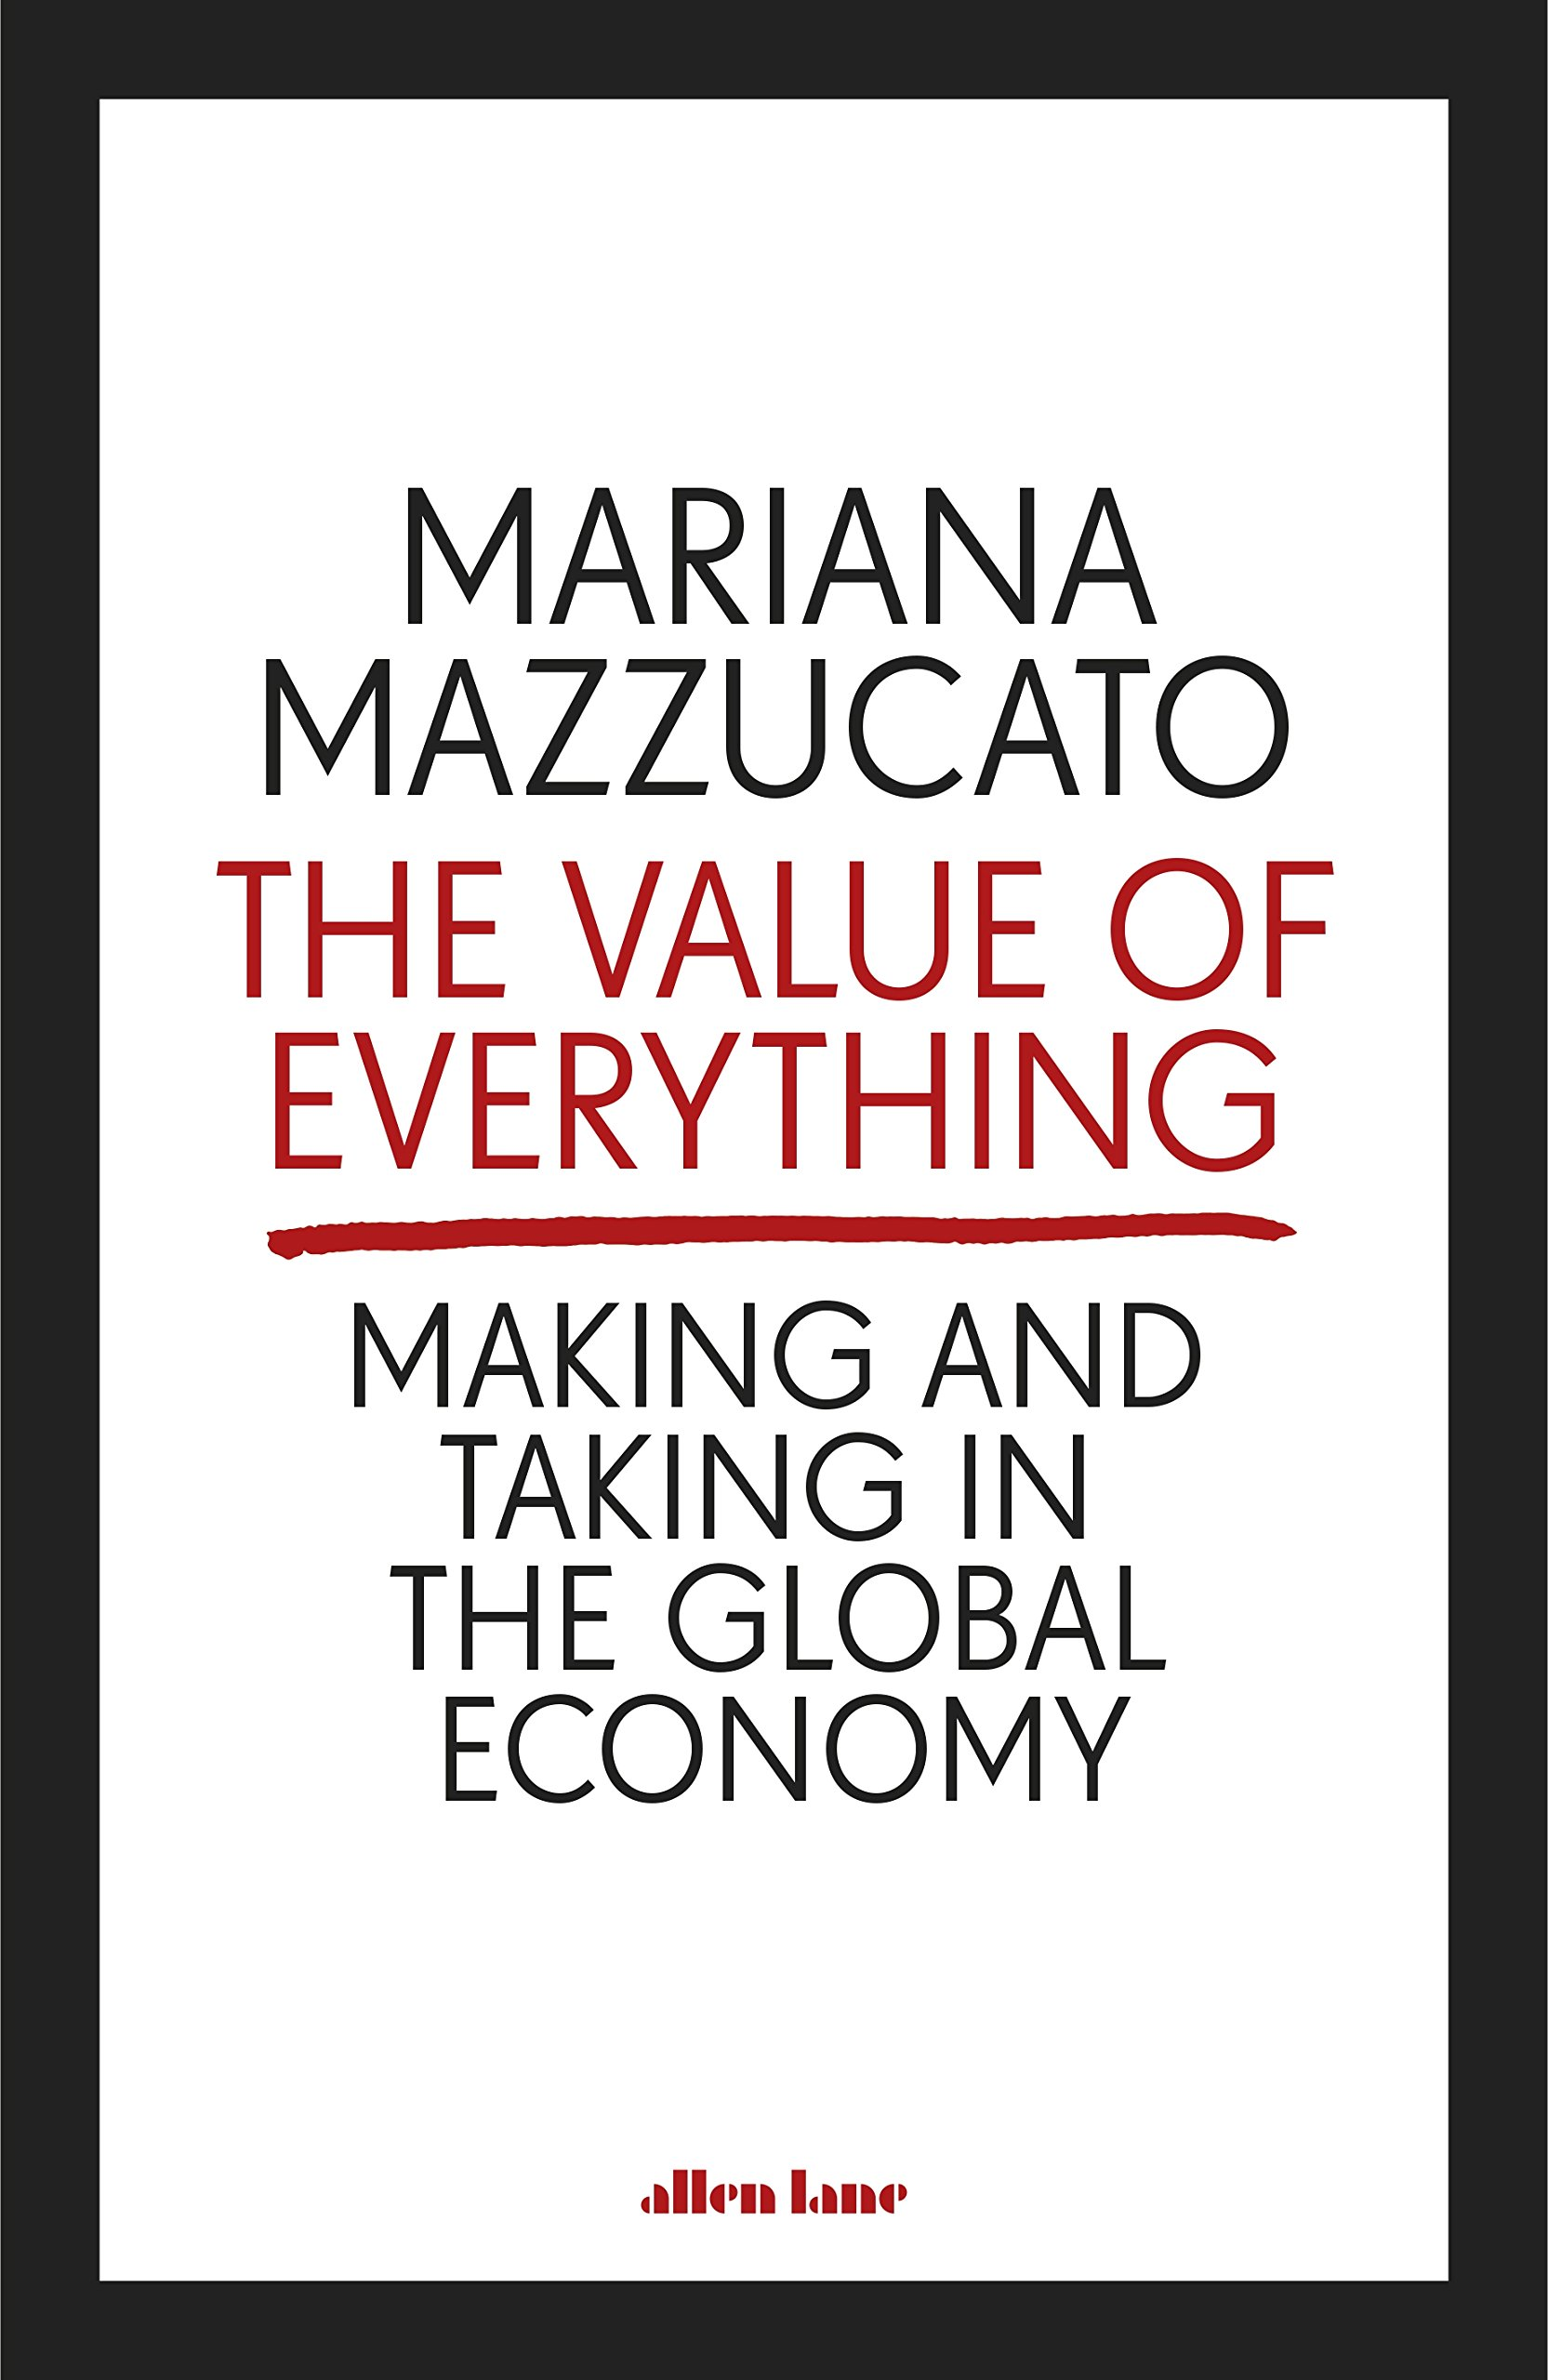 amazon the value of everything making and taking in the global